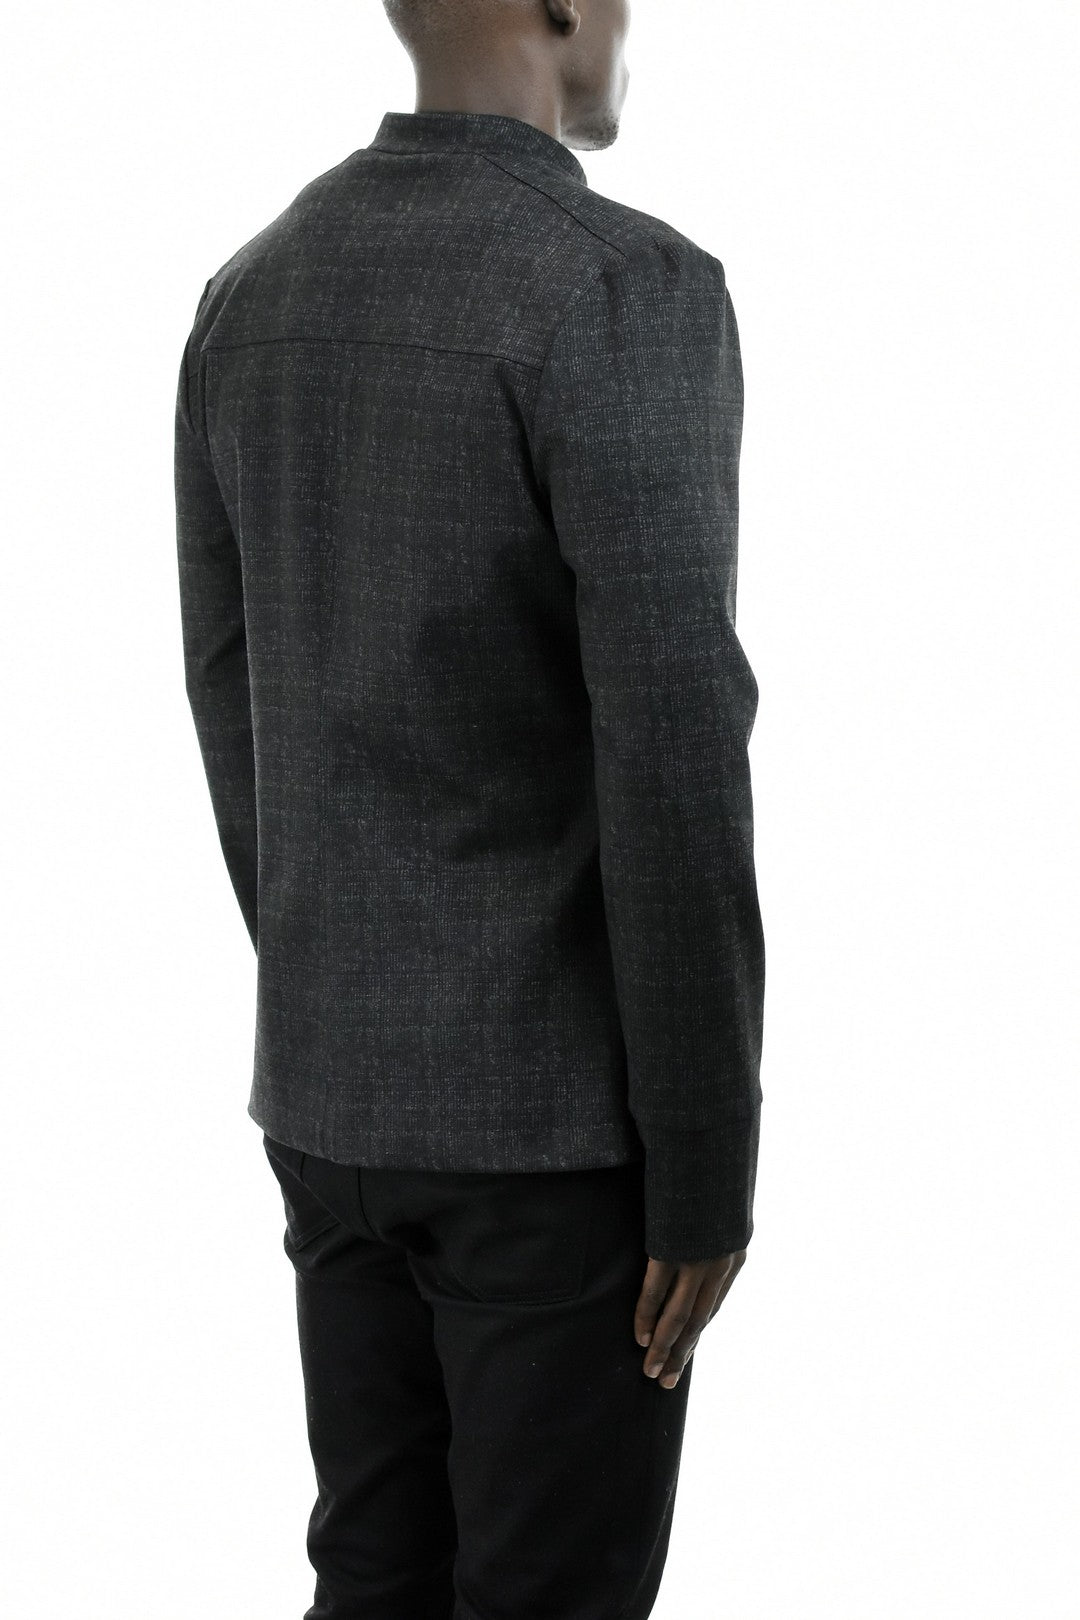 Mens Black and Grey Checked Jacket ZG5206